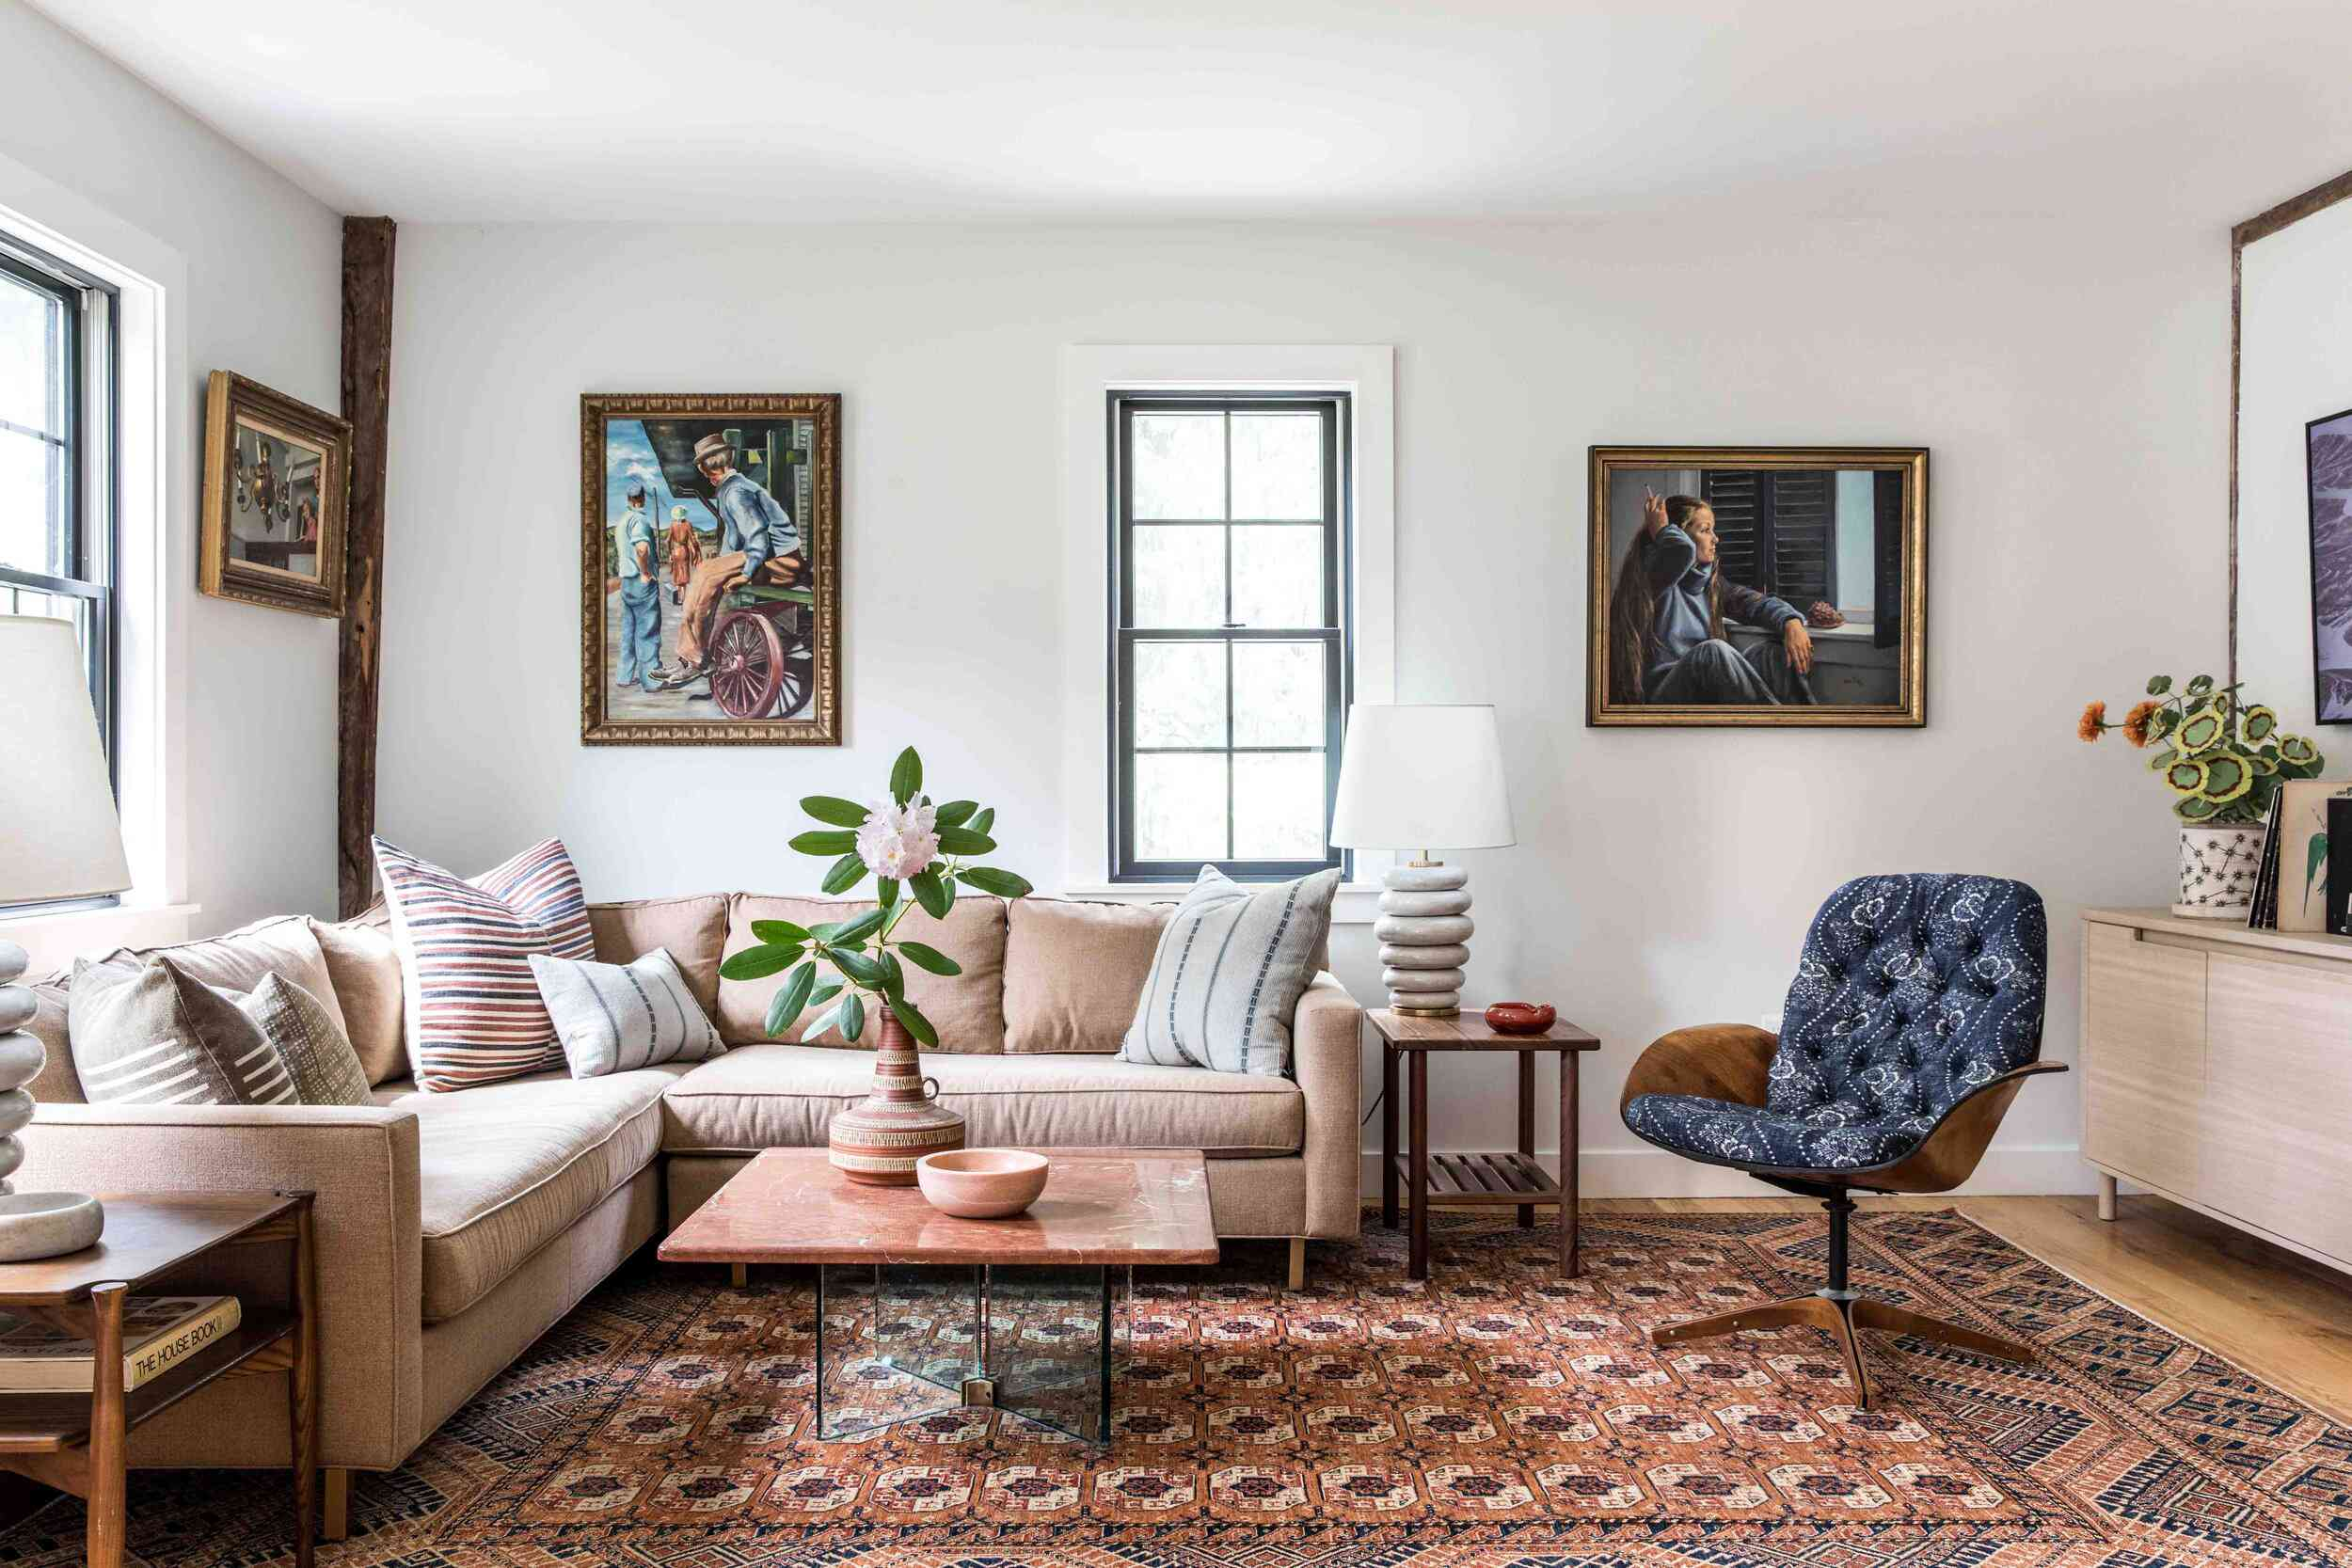 Eclectic living room with many patterns and colors